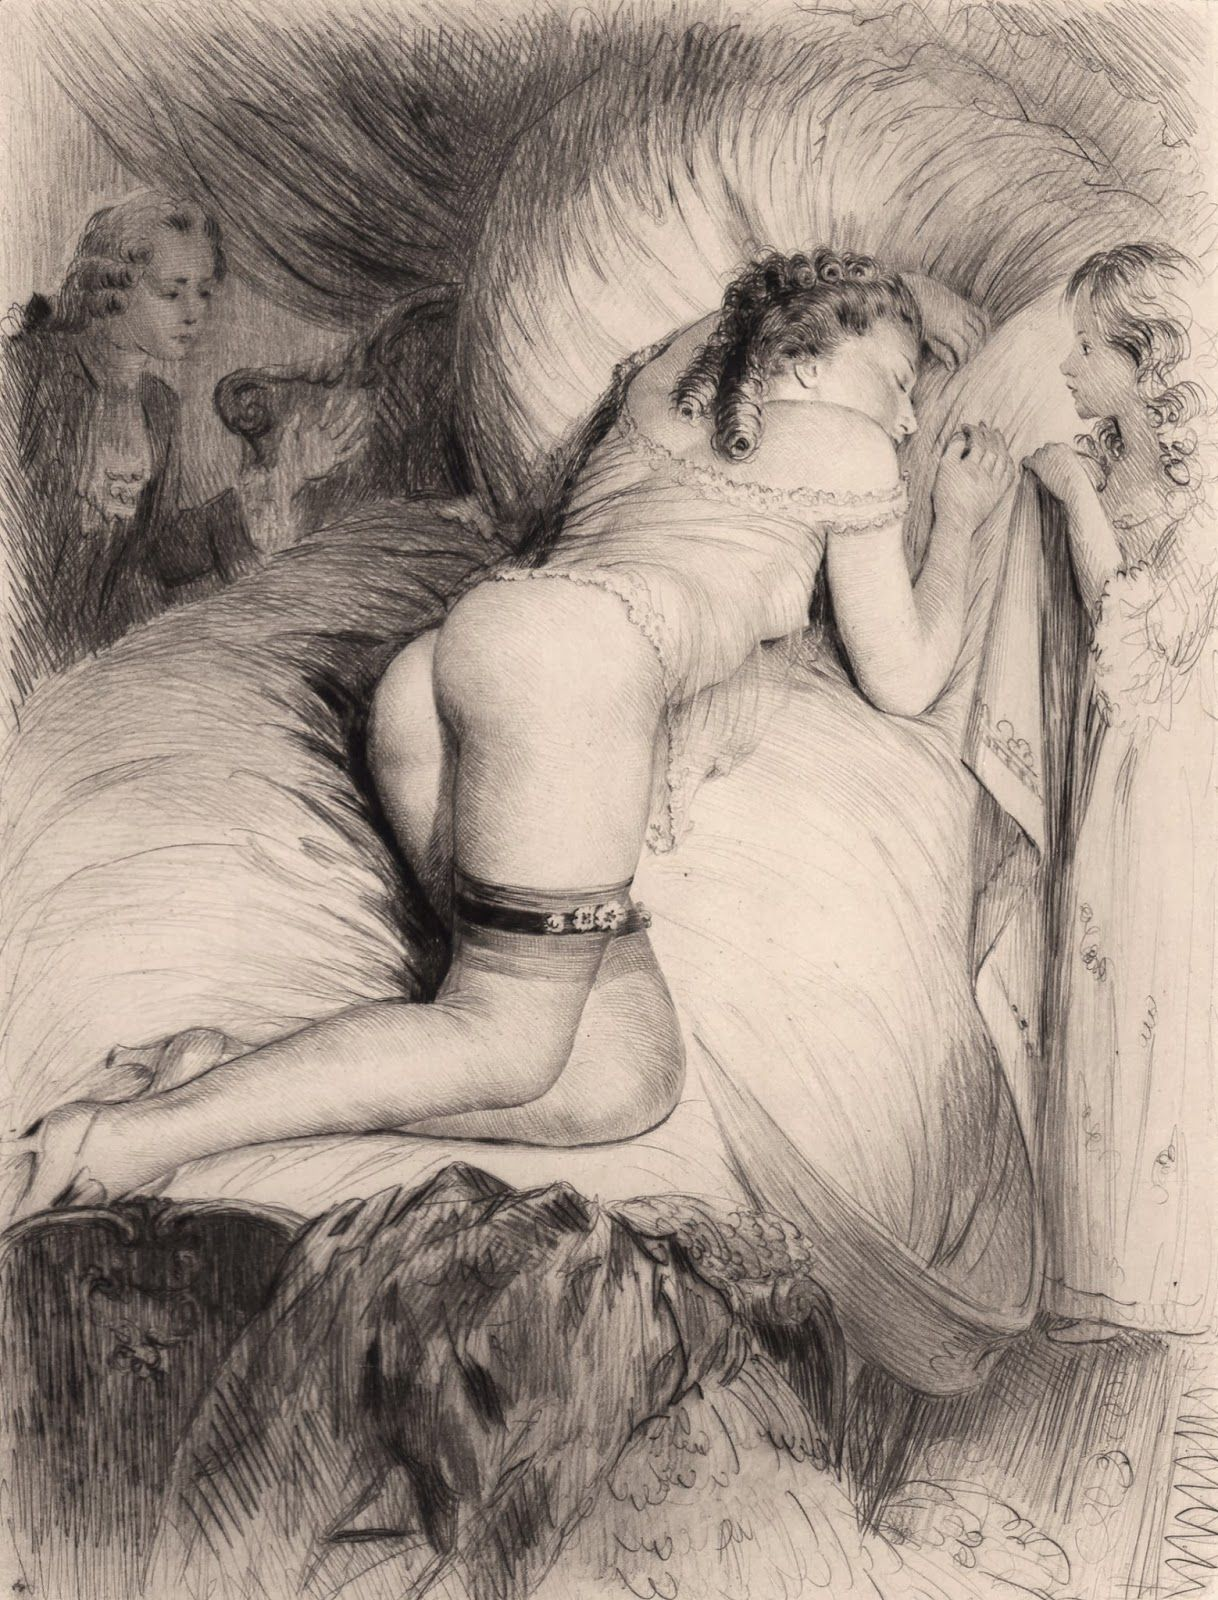 Erotic drawings and pictures gallery